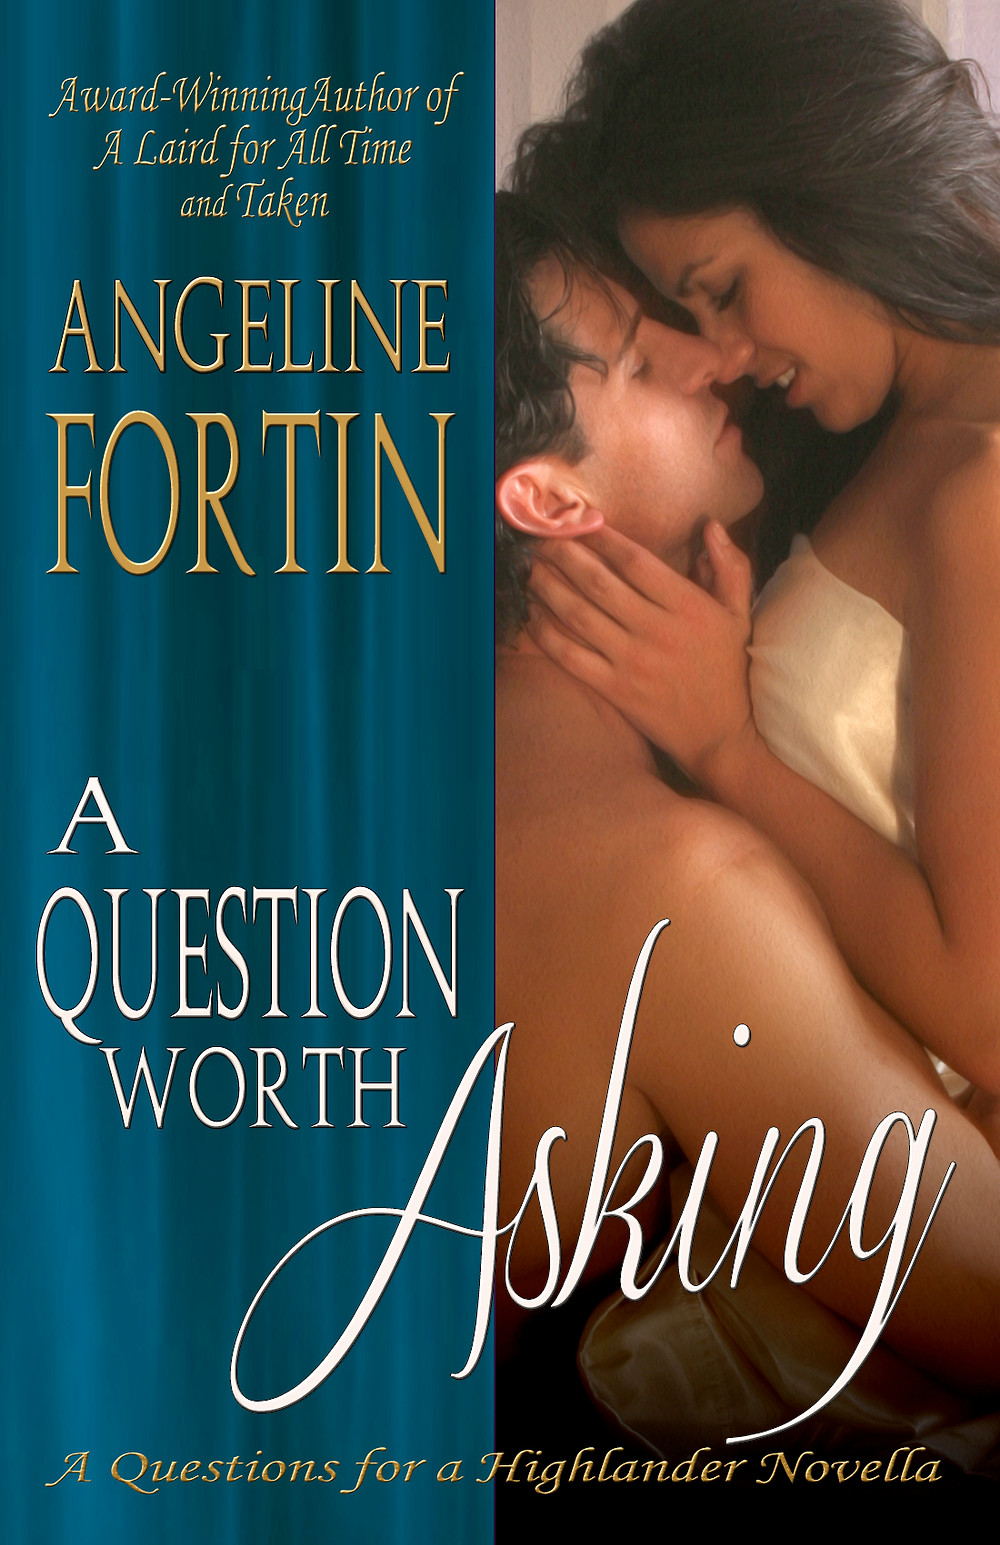 A QUESTION WORTH ASKING by Angelin Fortin